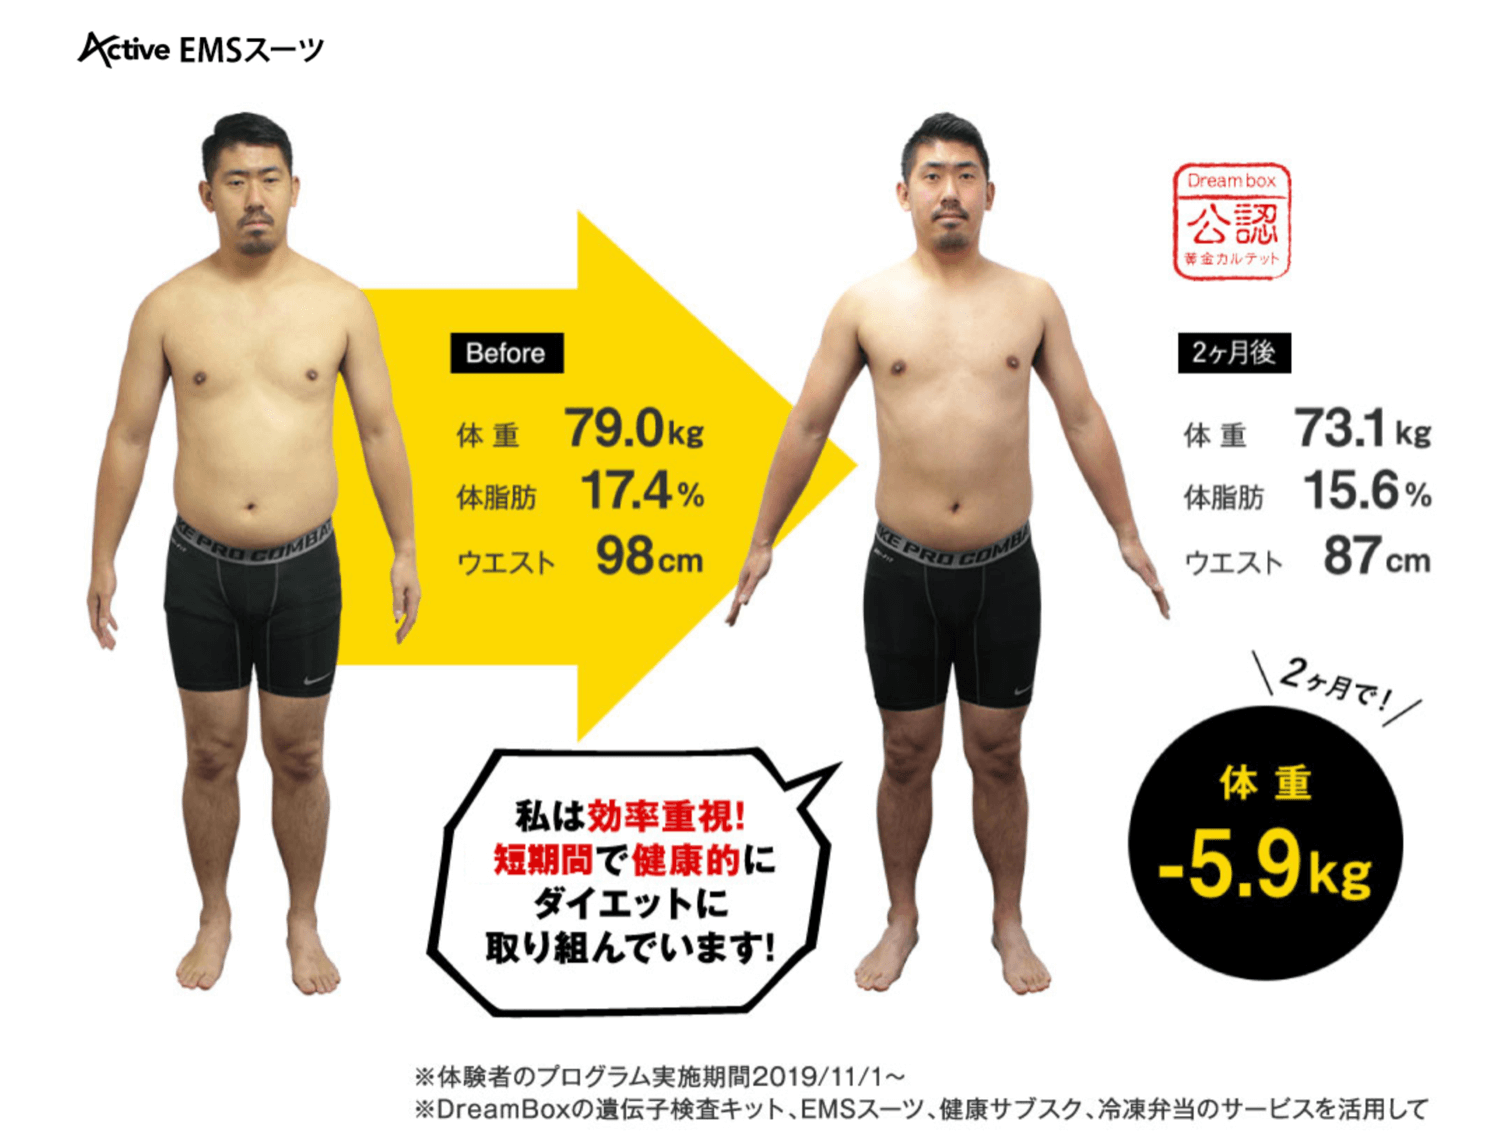 Activeのトレーニング結果